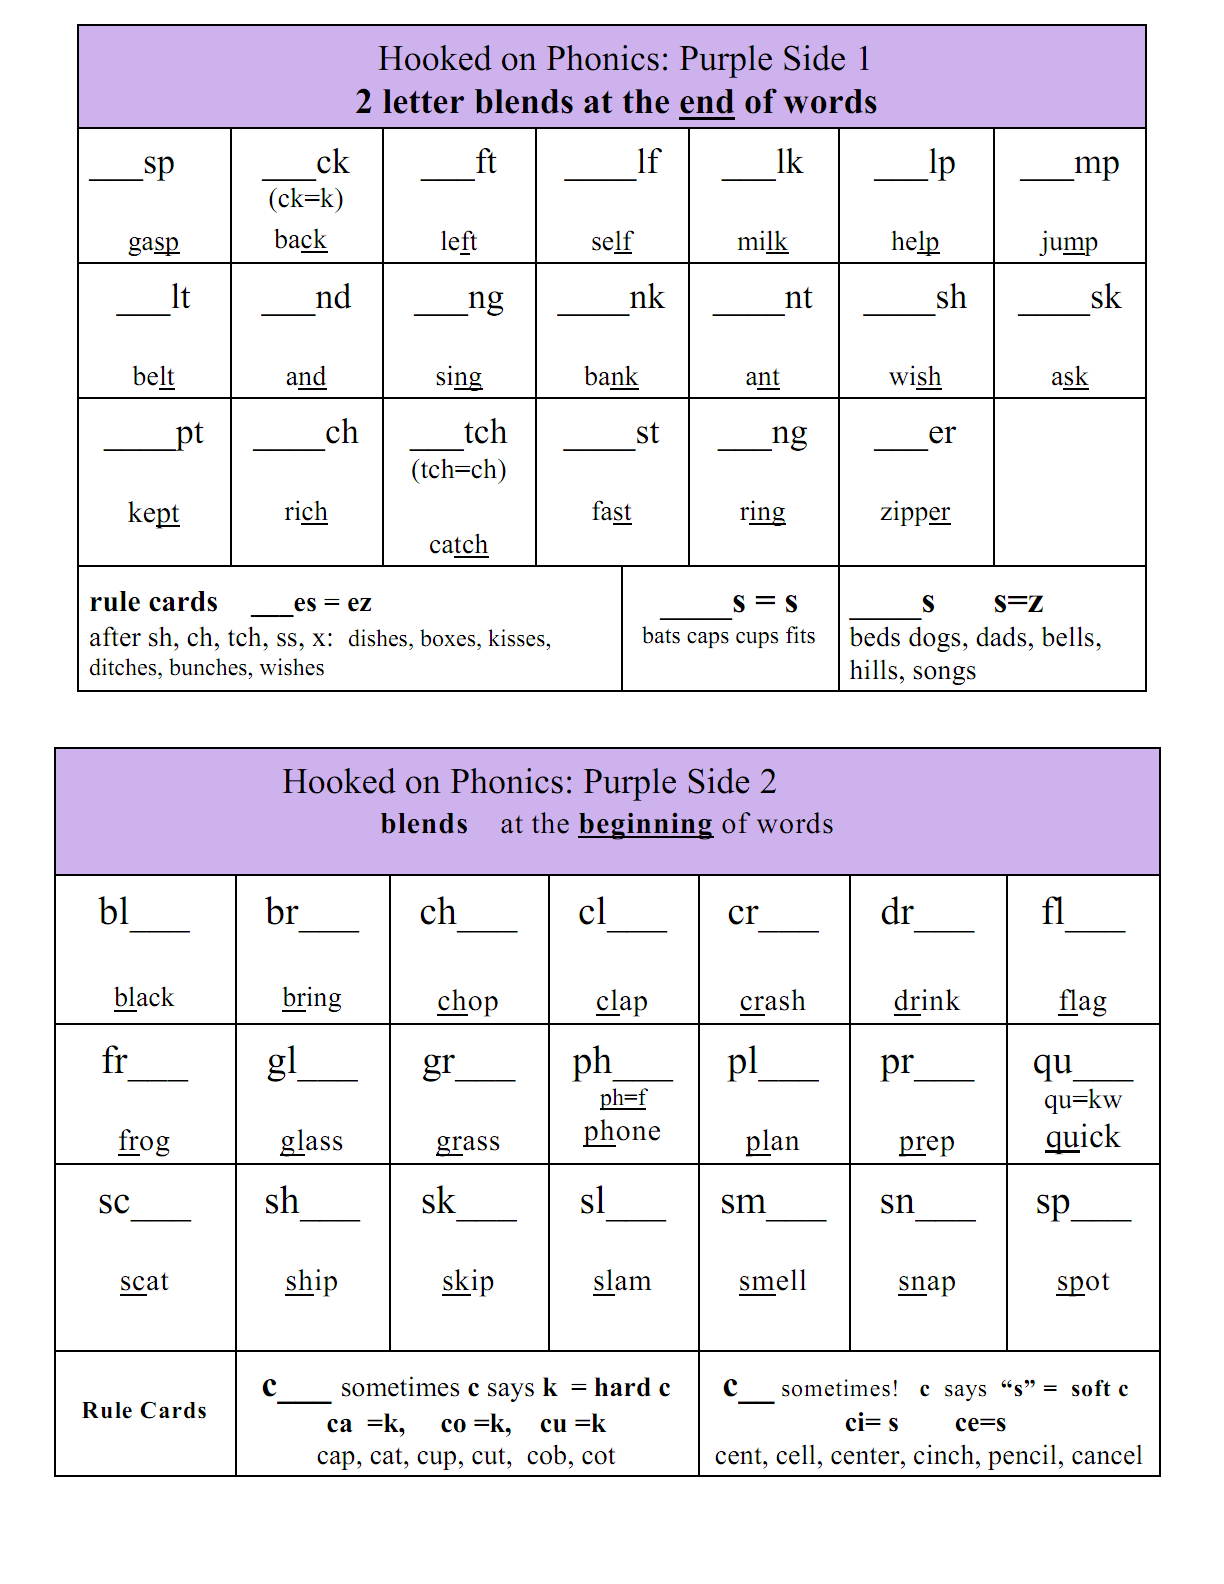 Worksheet Consonant Blends 3 consonant blends english 4 me 2 at beginning and end of words